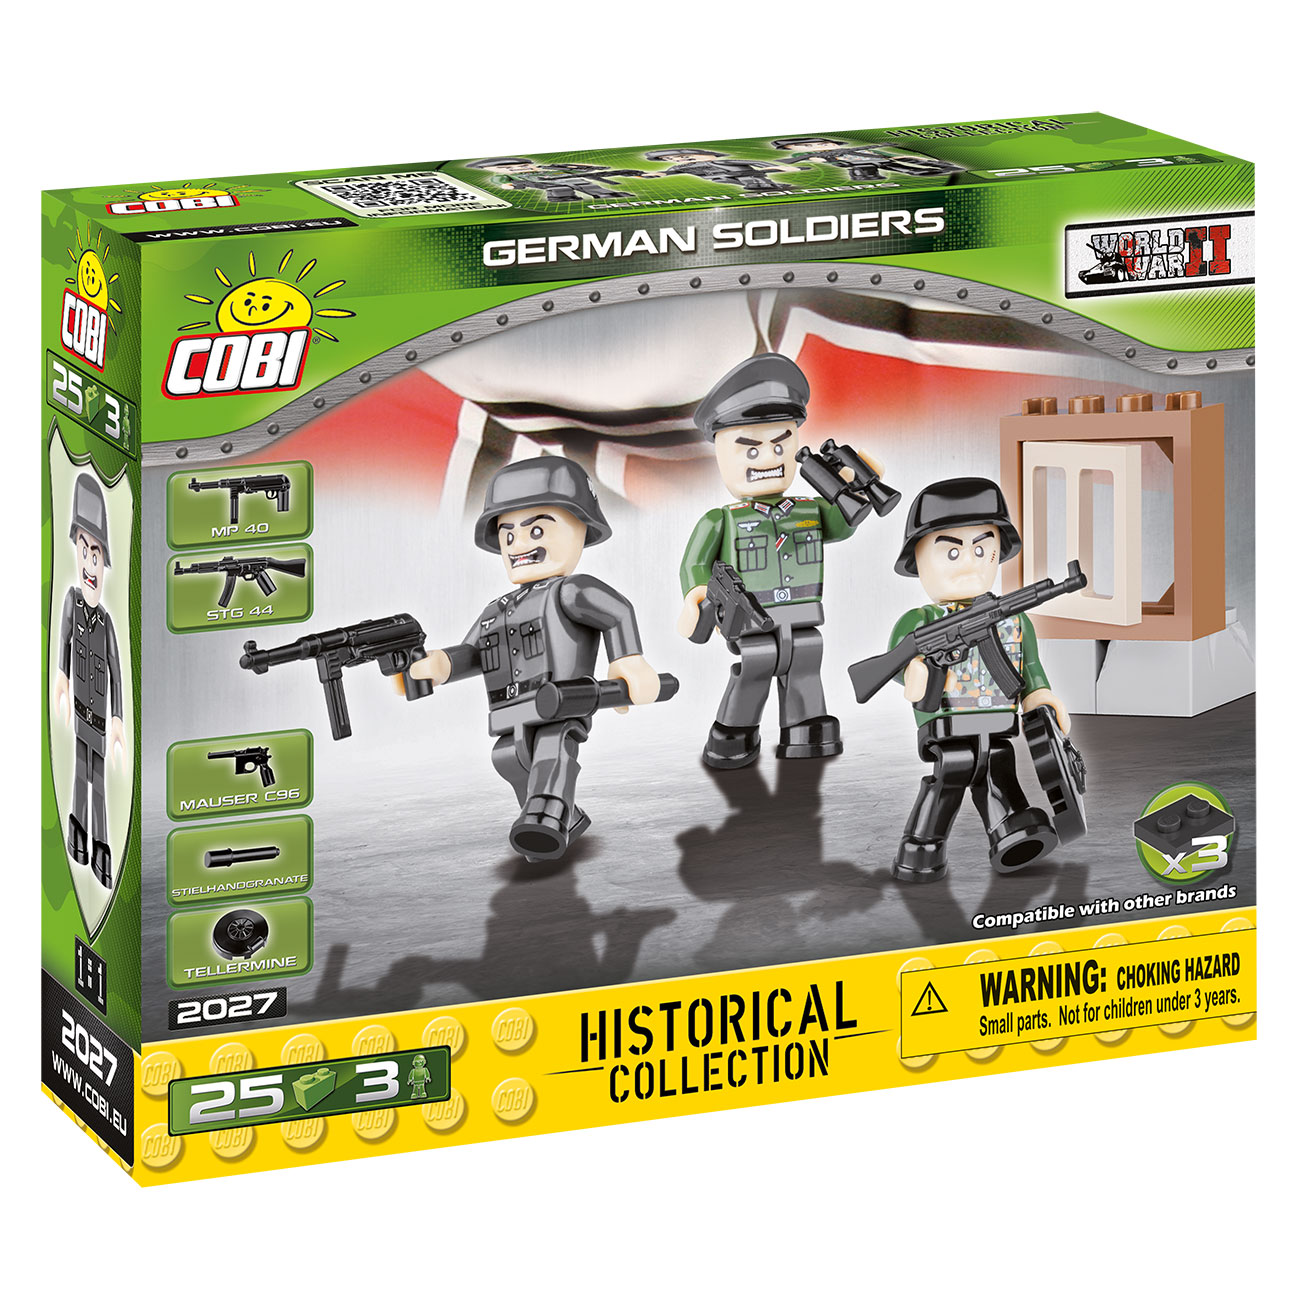 Cobi Historical Collection German Soldiers 25 Teile 2027 1